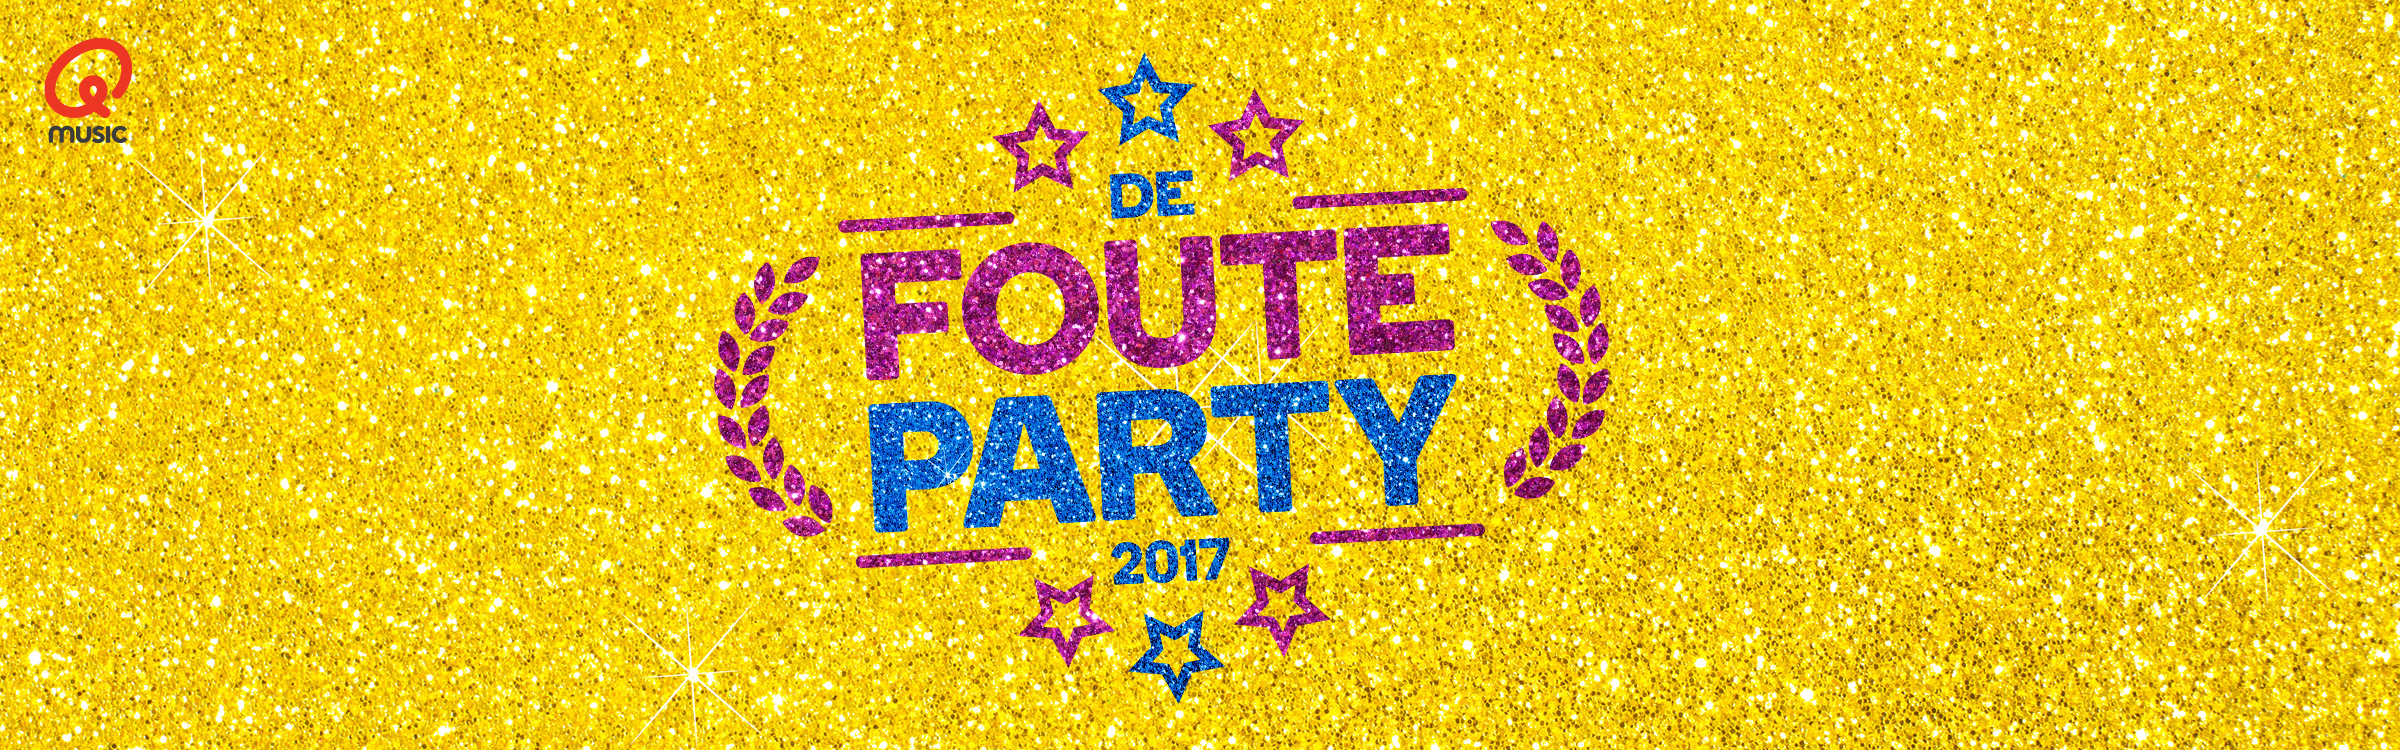 Qmusic actionheader fouteparty2017